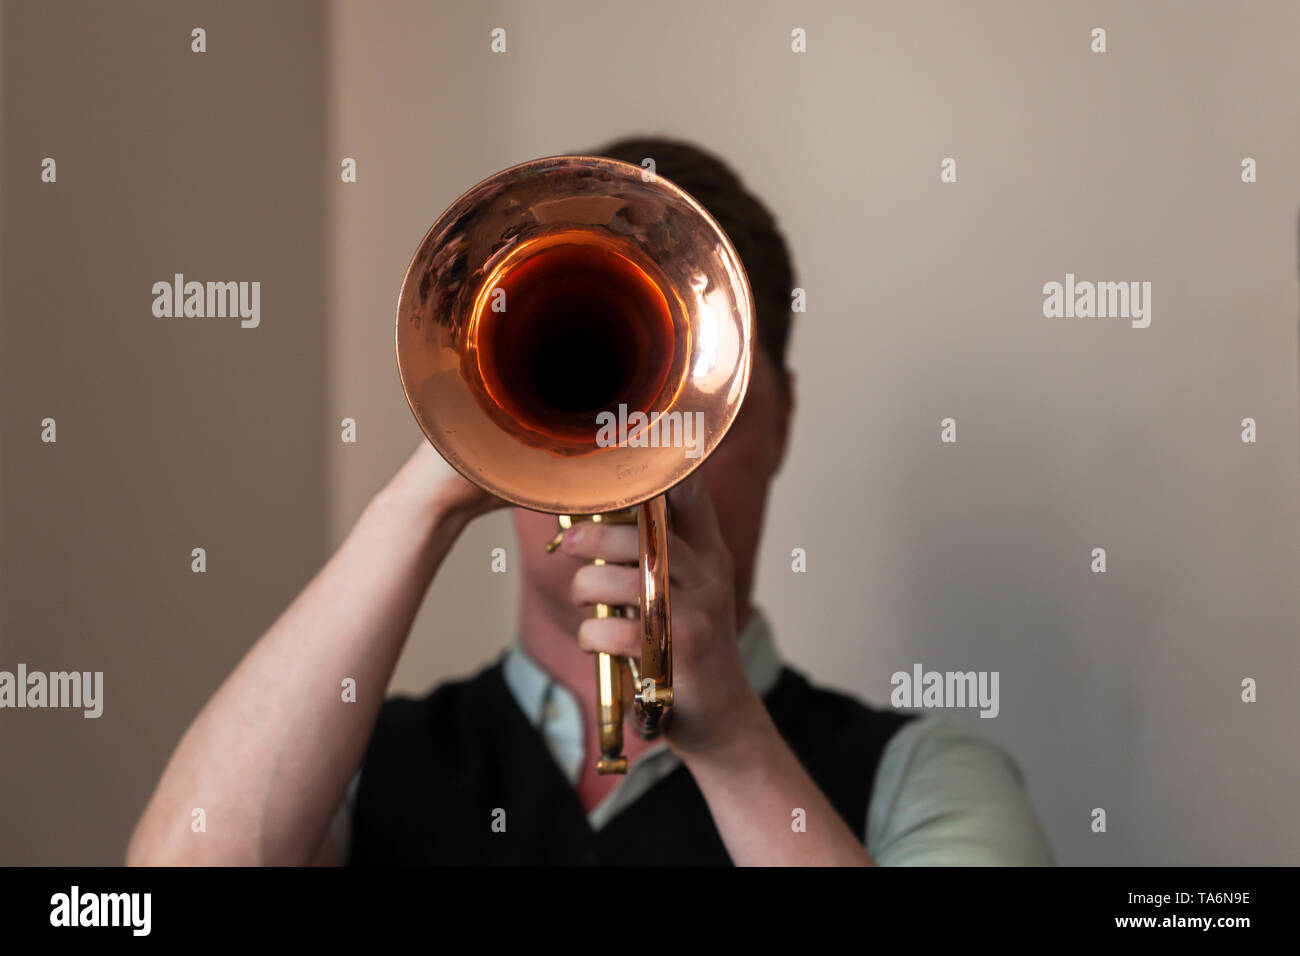 Trumpeter with trumpet in hands. It is a brass instrument commonly used in classical and jazz ensembles - Stock Image